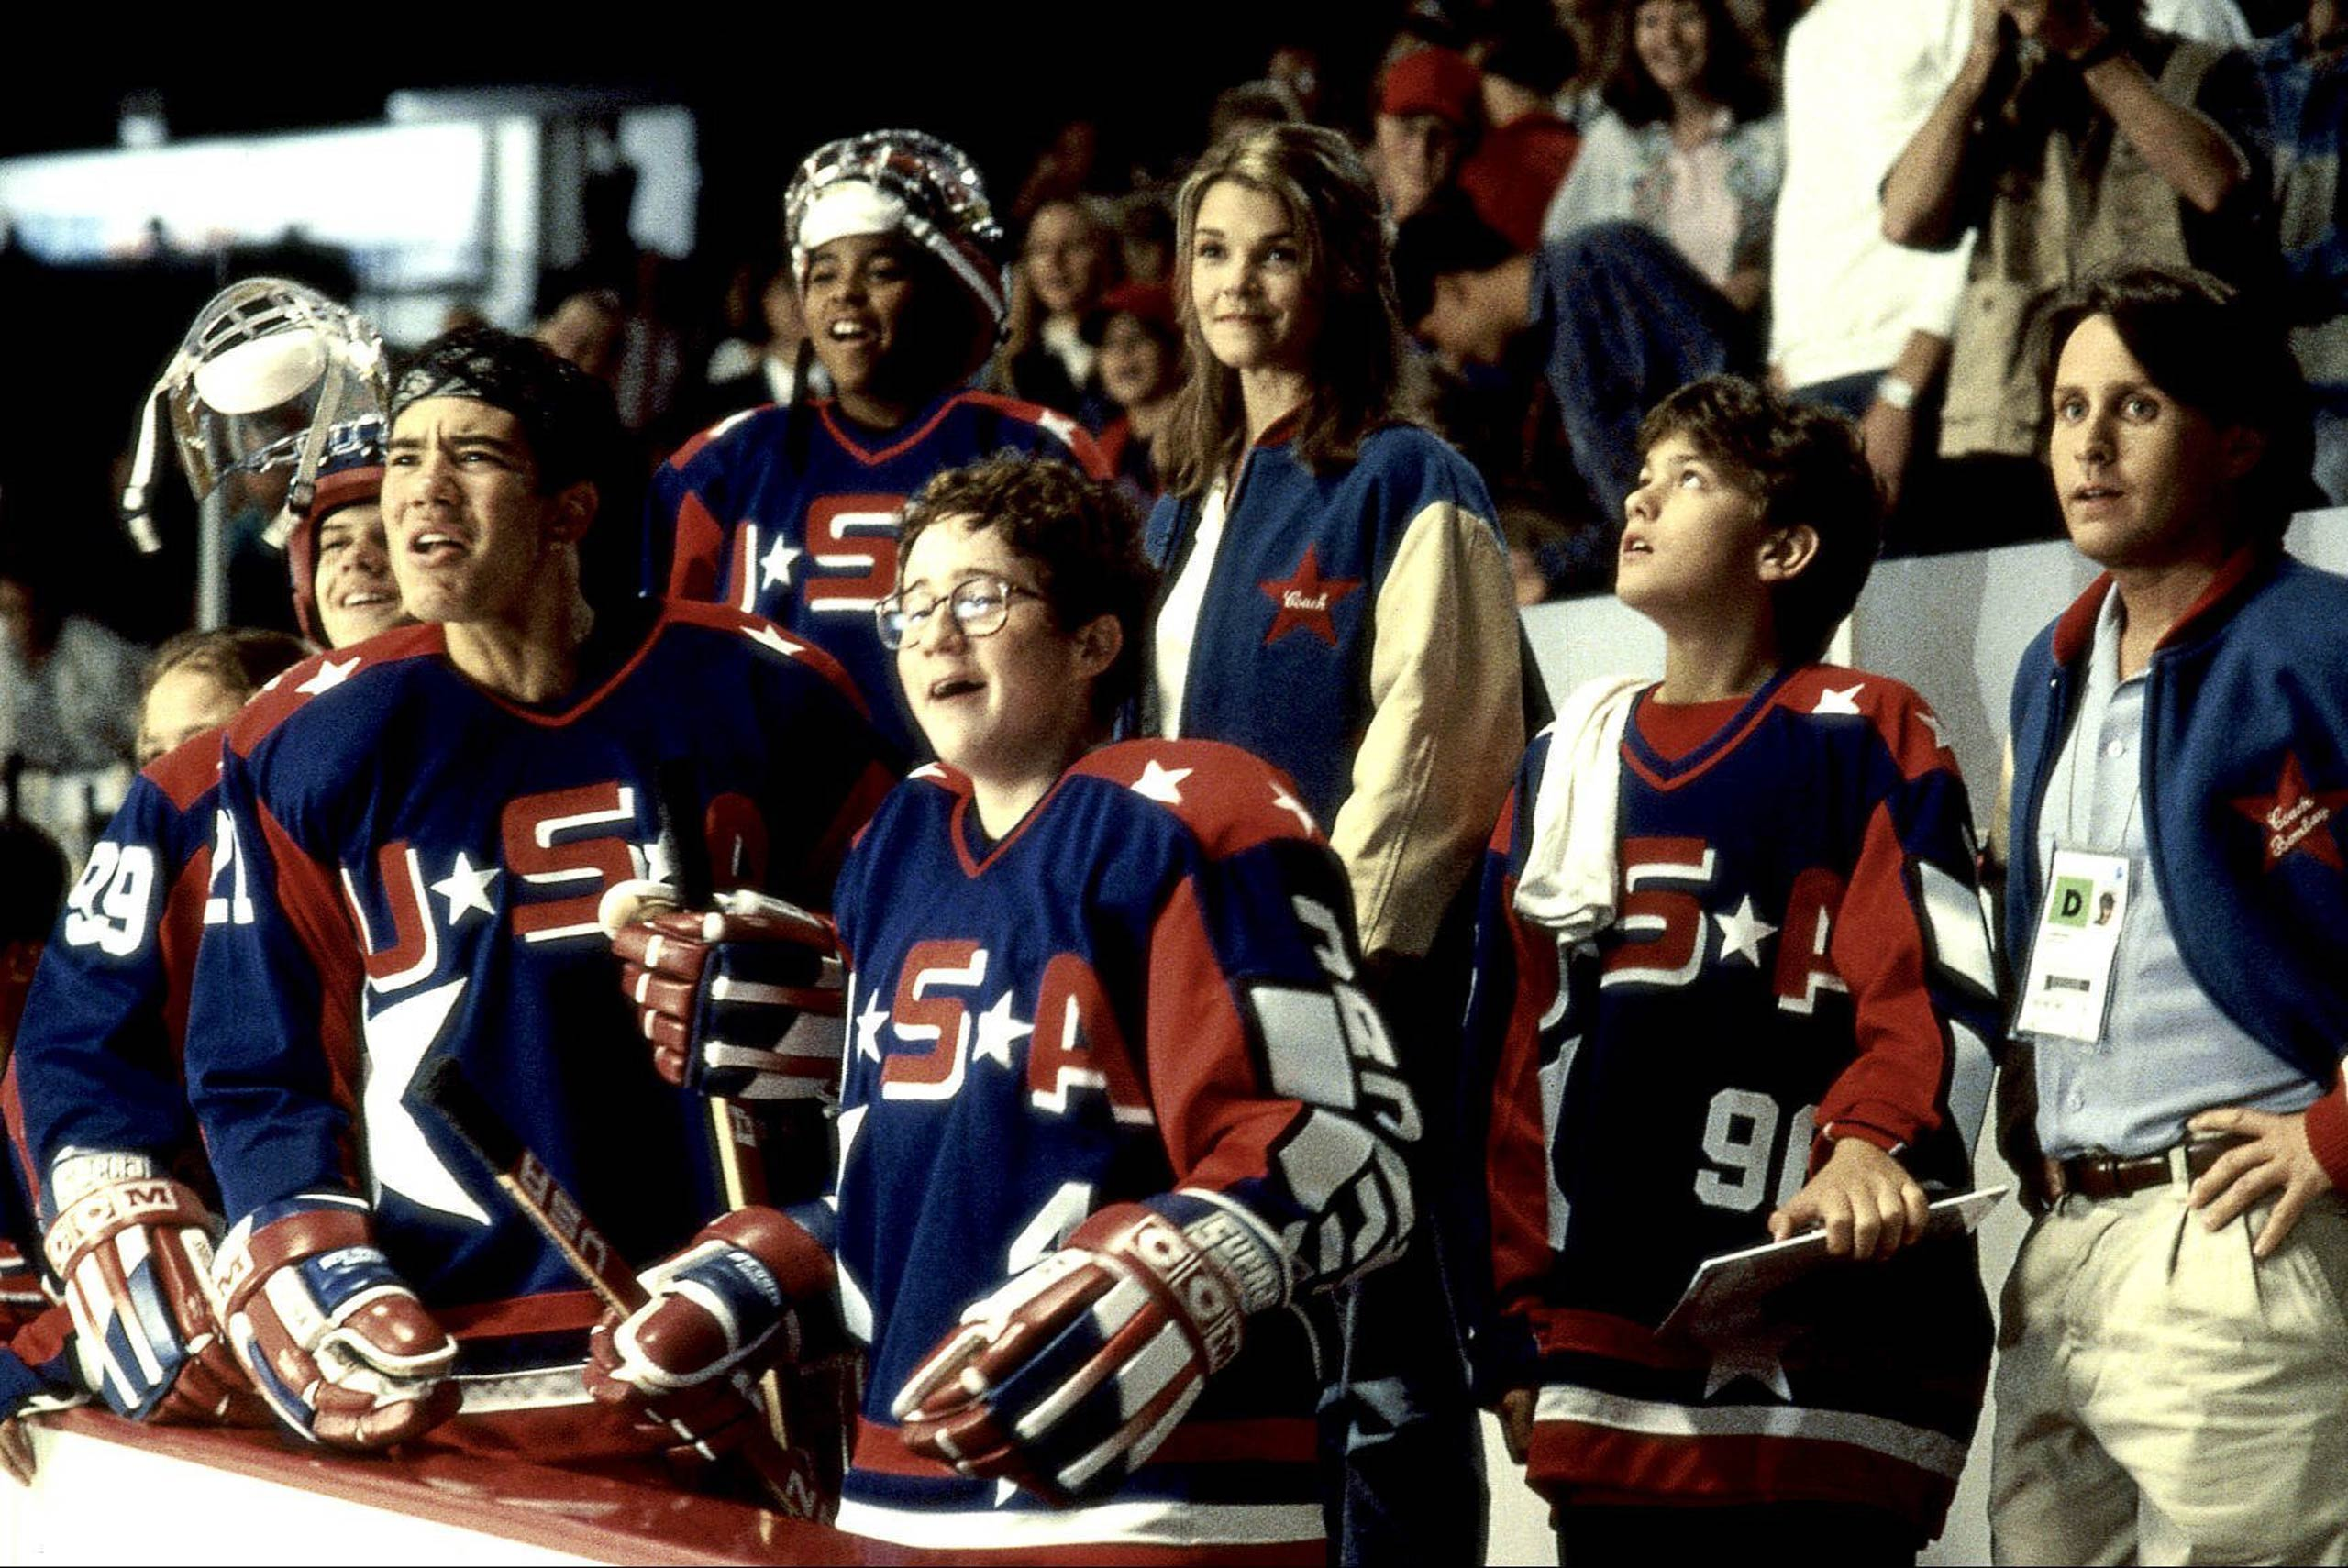 <strong><i>D2: The Mighty Ducks</i></strong> The 1994 sequel to the original <i>Mighty Ducks</i>, the ragtag team of young hockey players – the Ducks – are reunited by Coach Gordon Bombay (Emilio Estevez.)